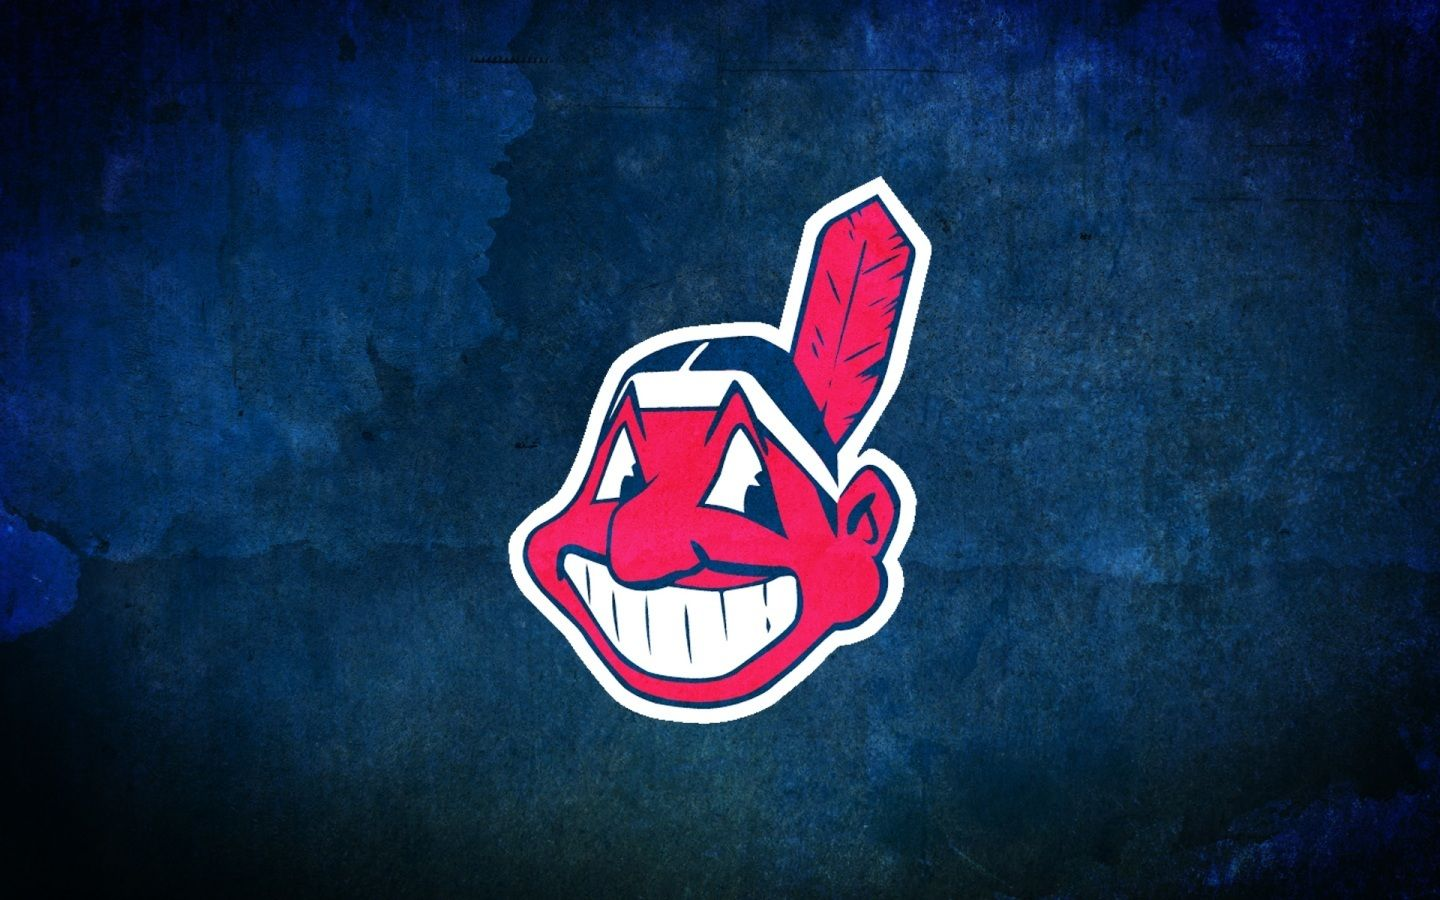 Cleveland Cavaliers Wallpaper And Screensavers Cleveland Indians Cavaliers Wallpaper Indians